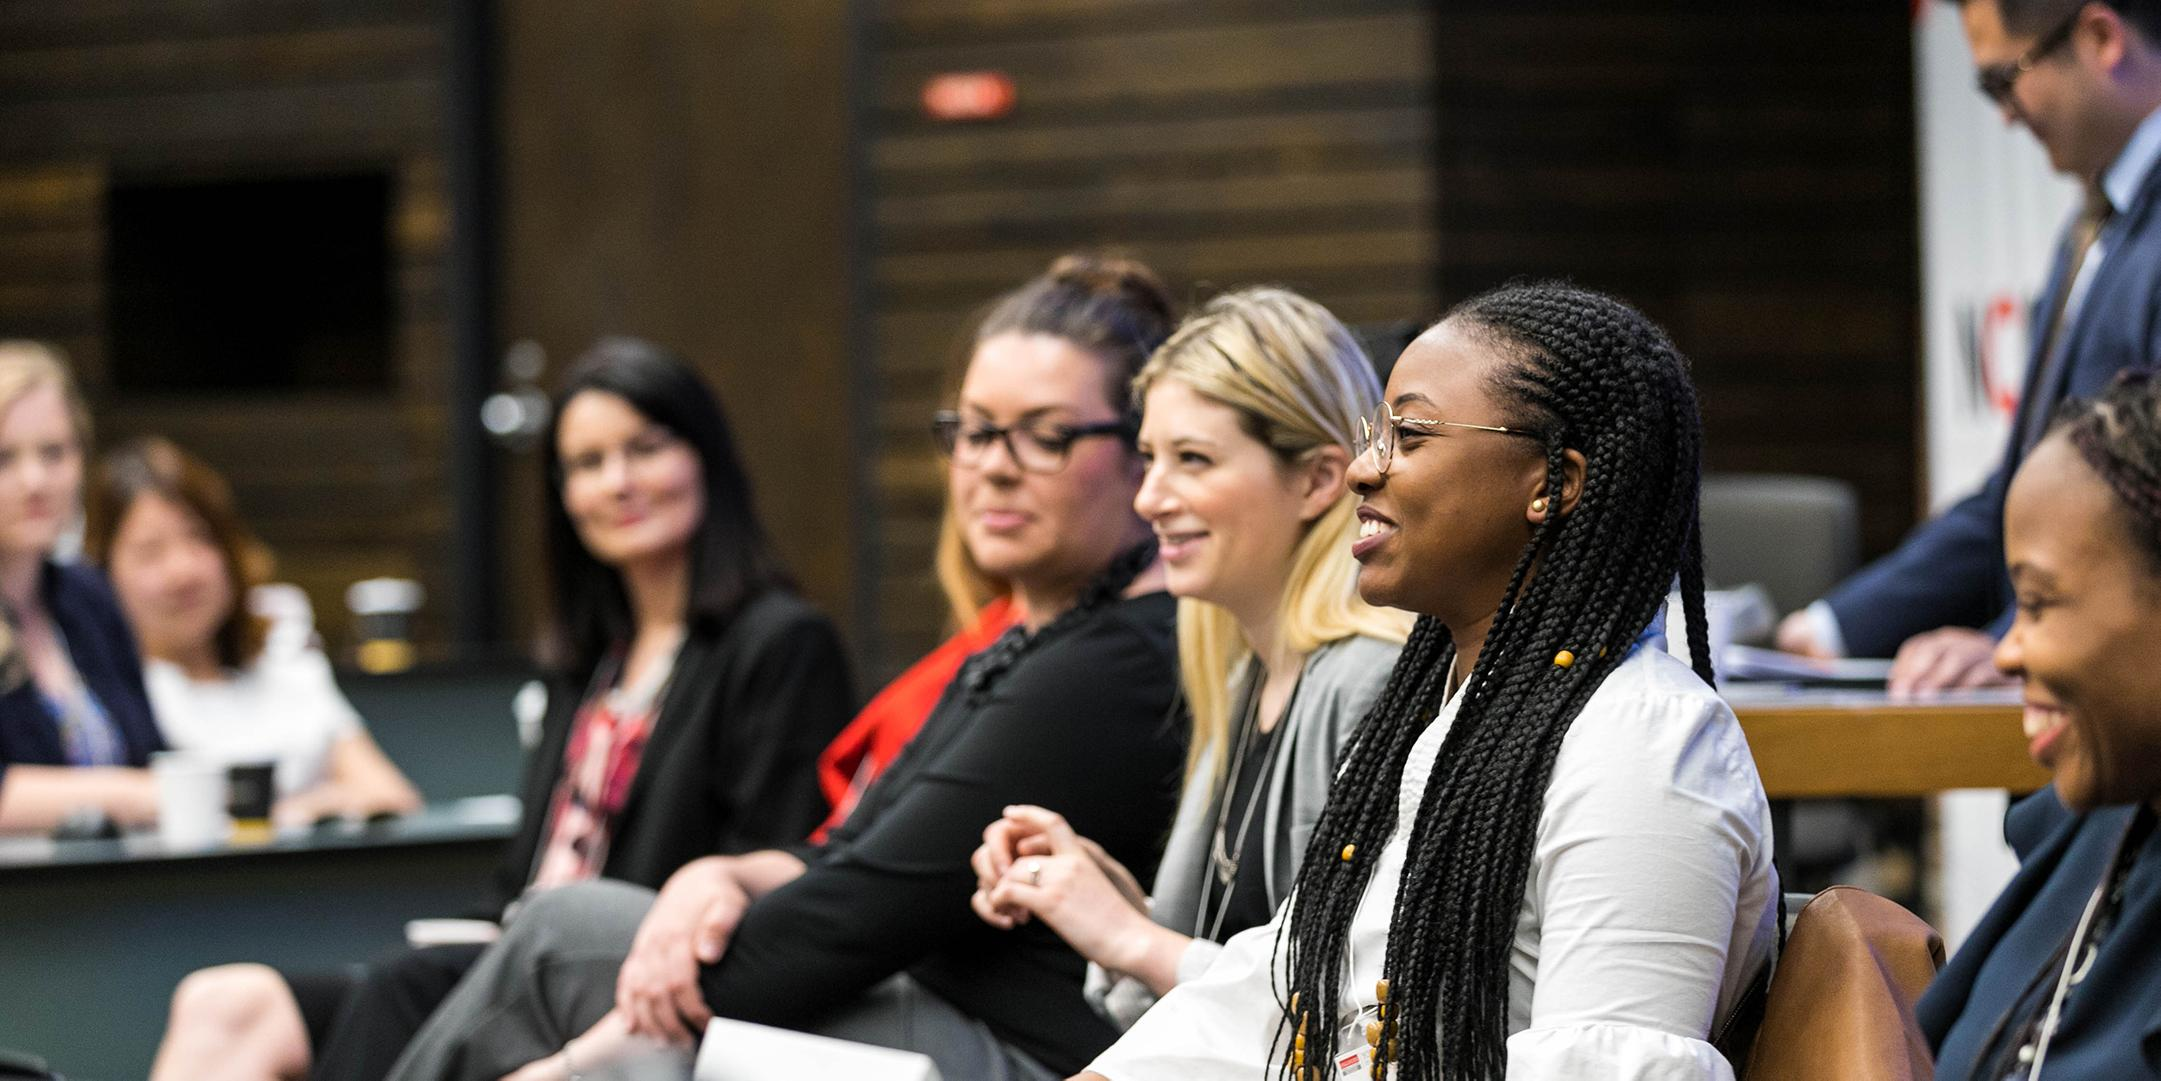 Osgoode's Internationally Trained Lawyers Day (OITLD) 2020